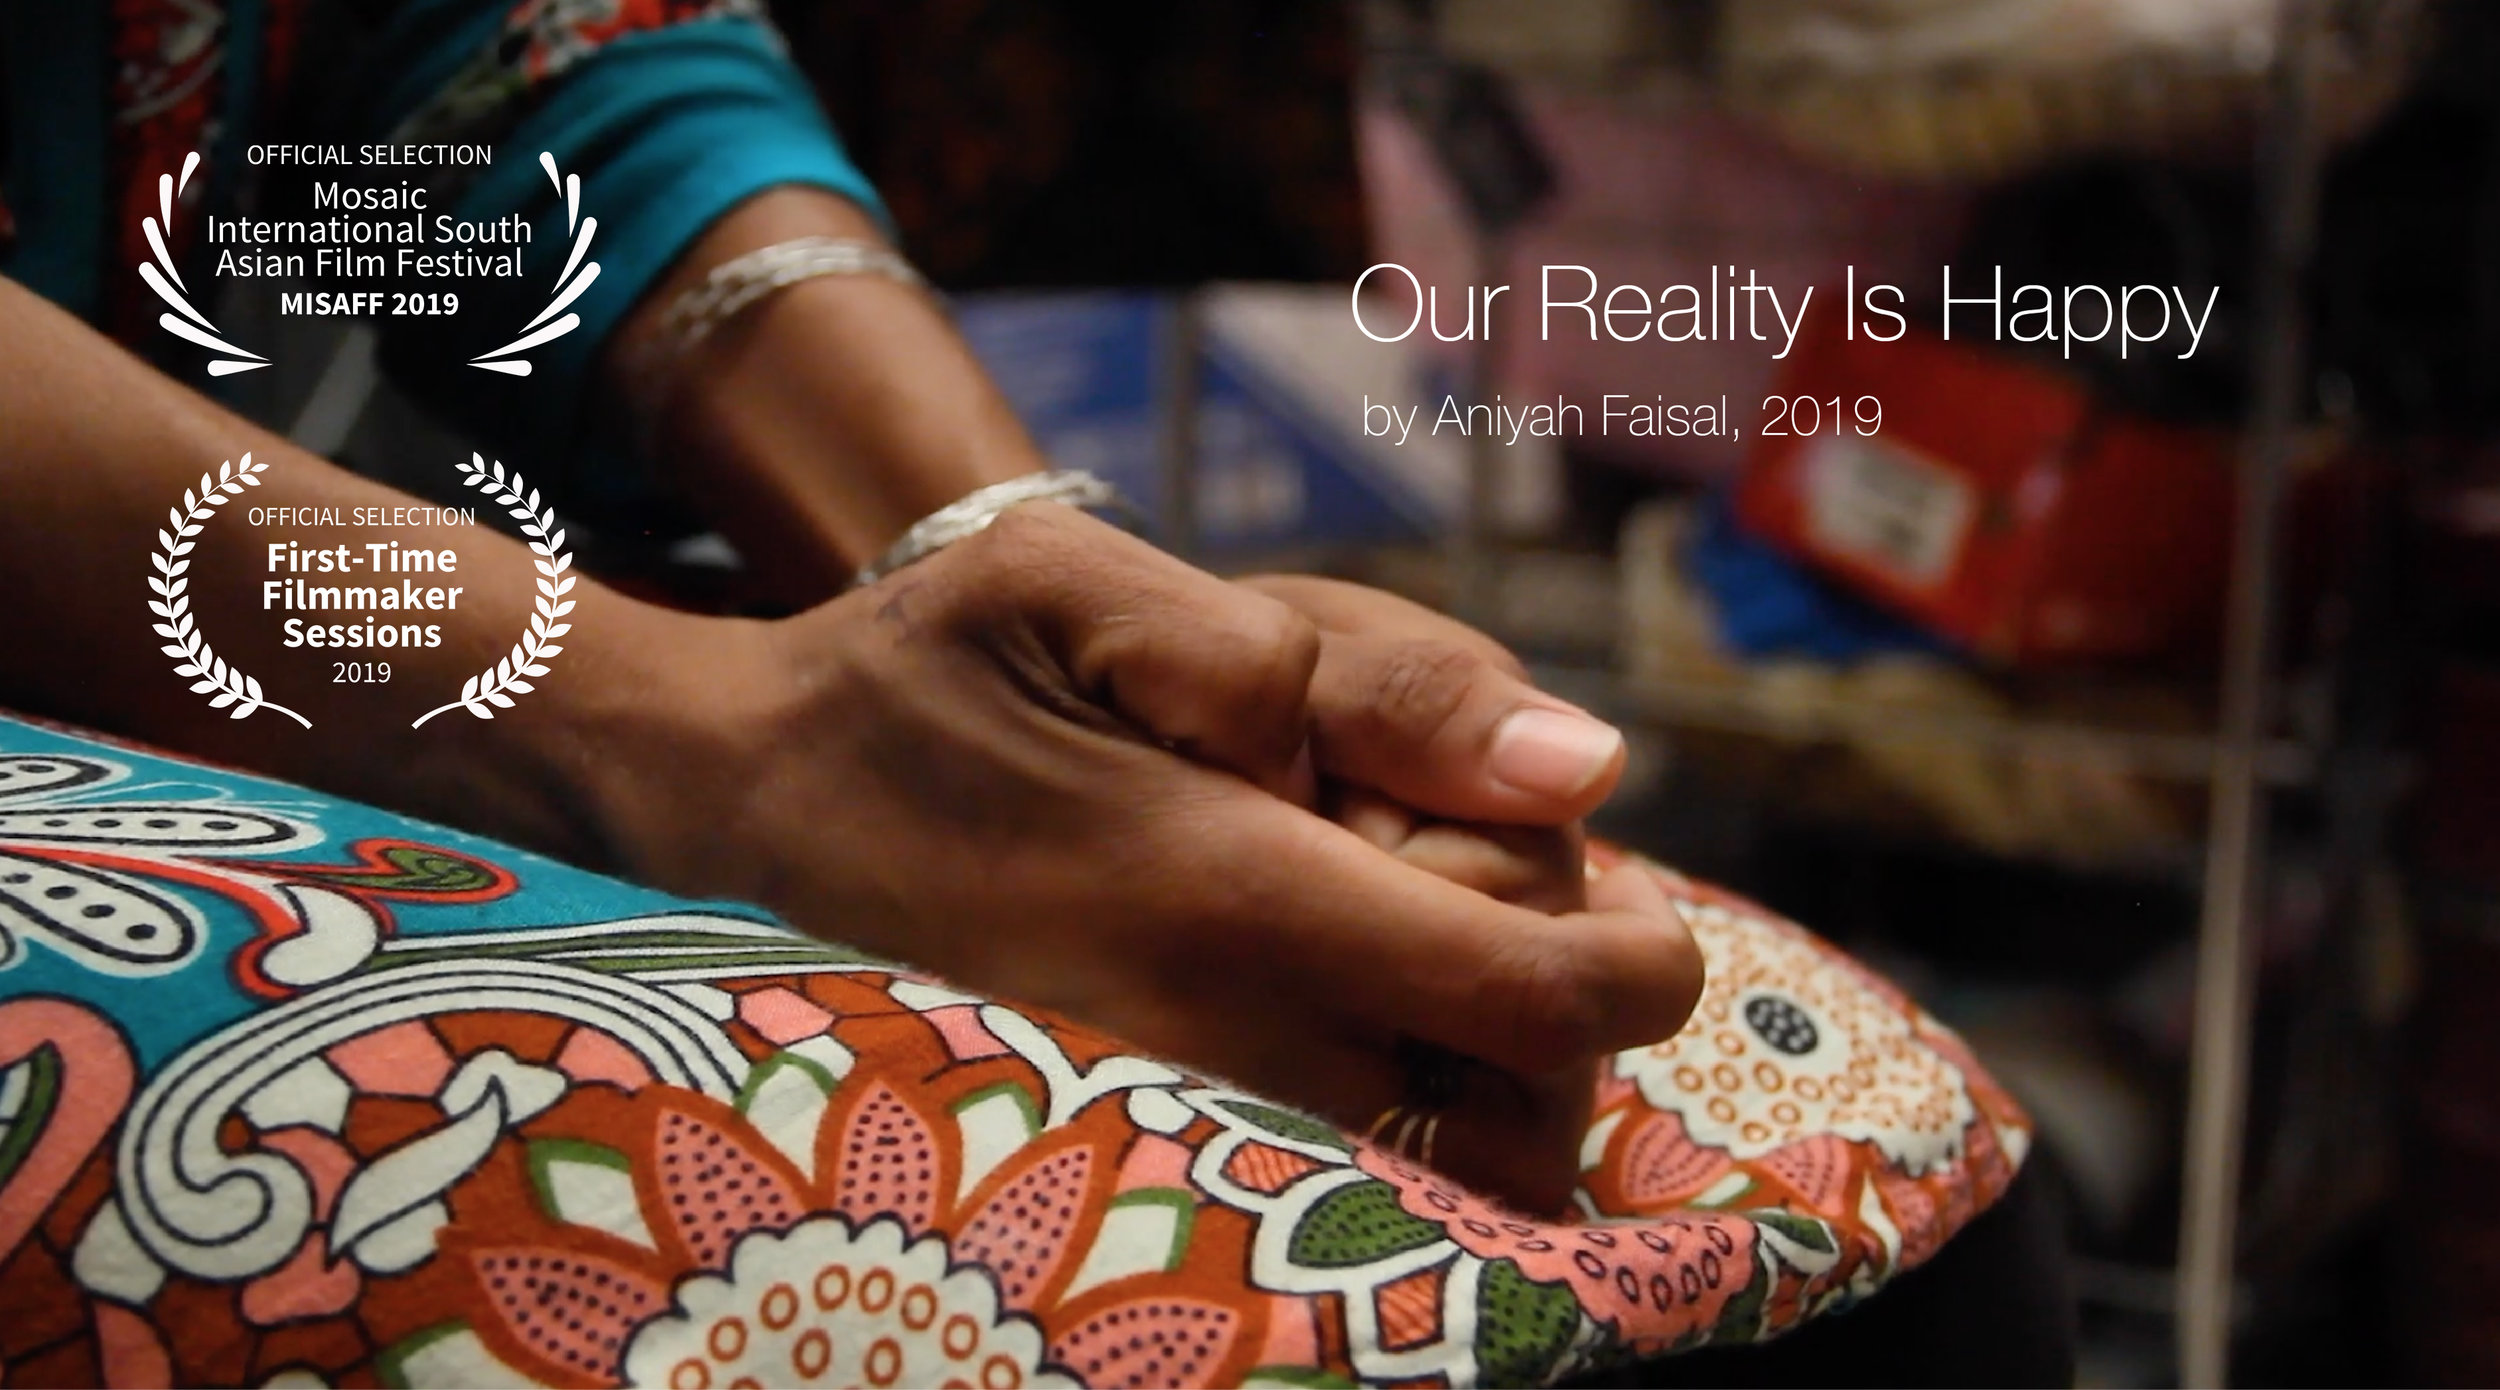 Our Reality Is Happy - 3 min Canada/Pakistan   Director Aniyah Faisal. Two teenaged Pakistani maids offer a glimpse into their working lives. Aniyah Faisal is the youngest filmmaker ever to show their work at MISAFF.